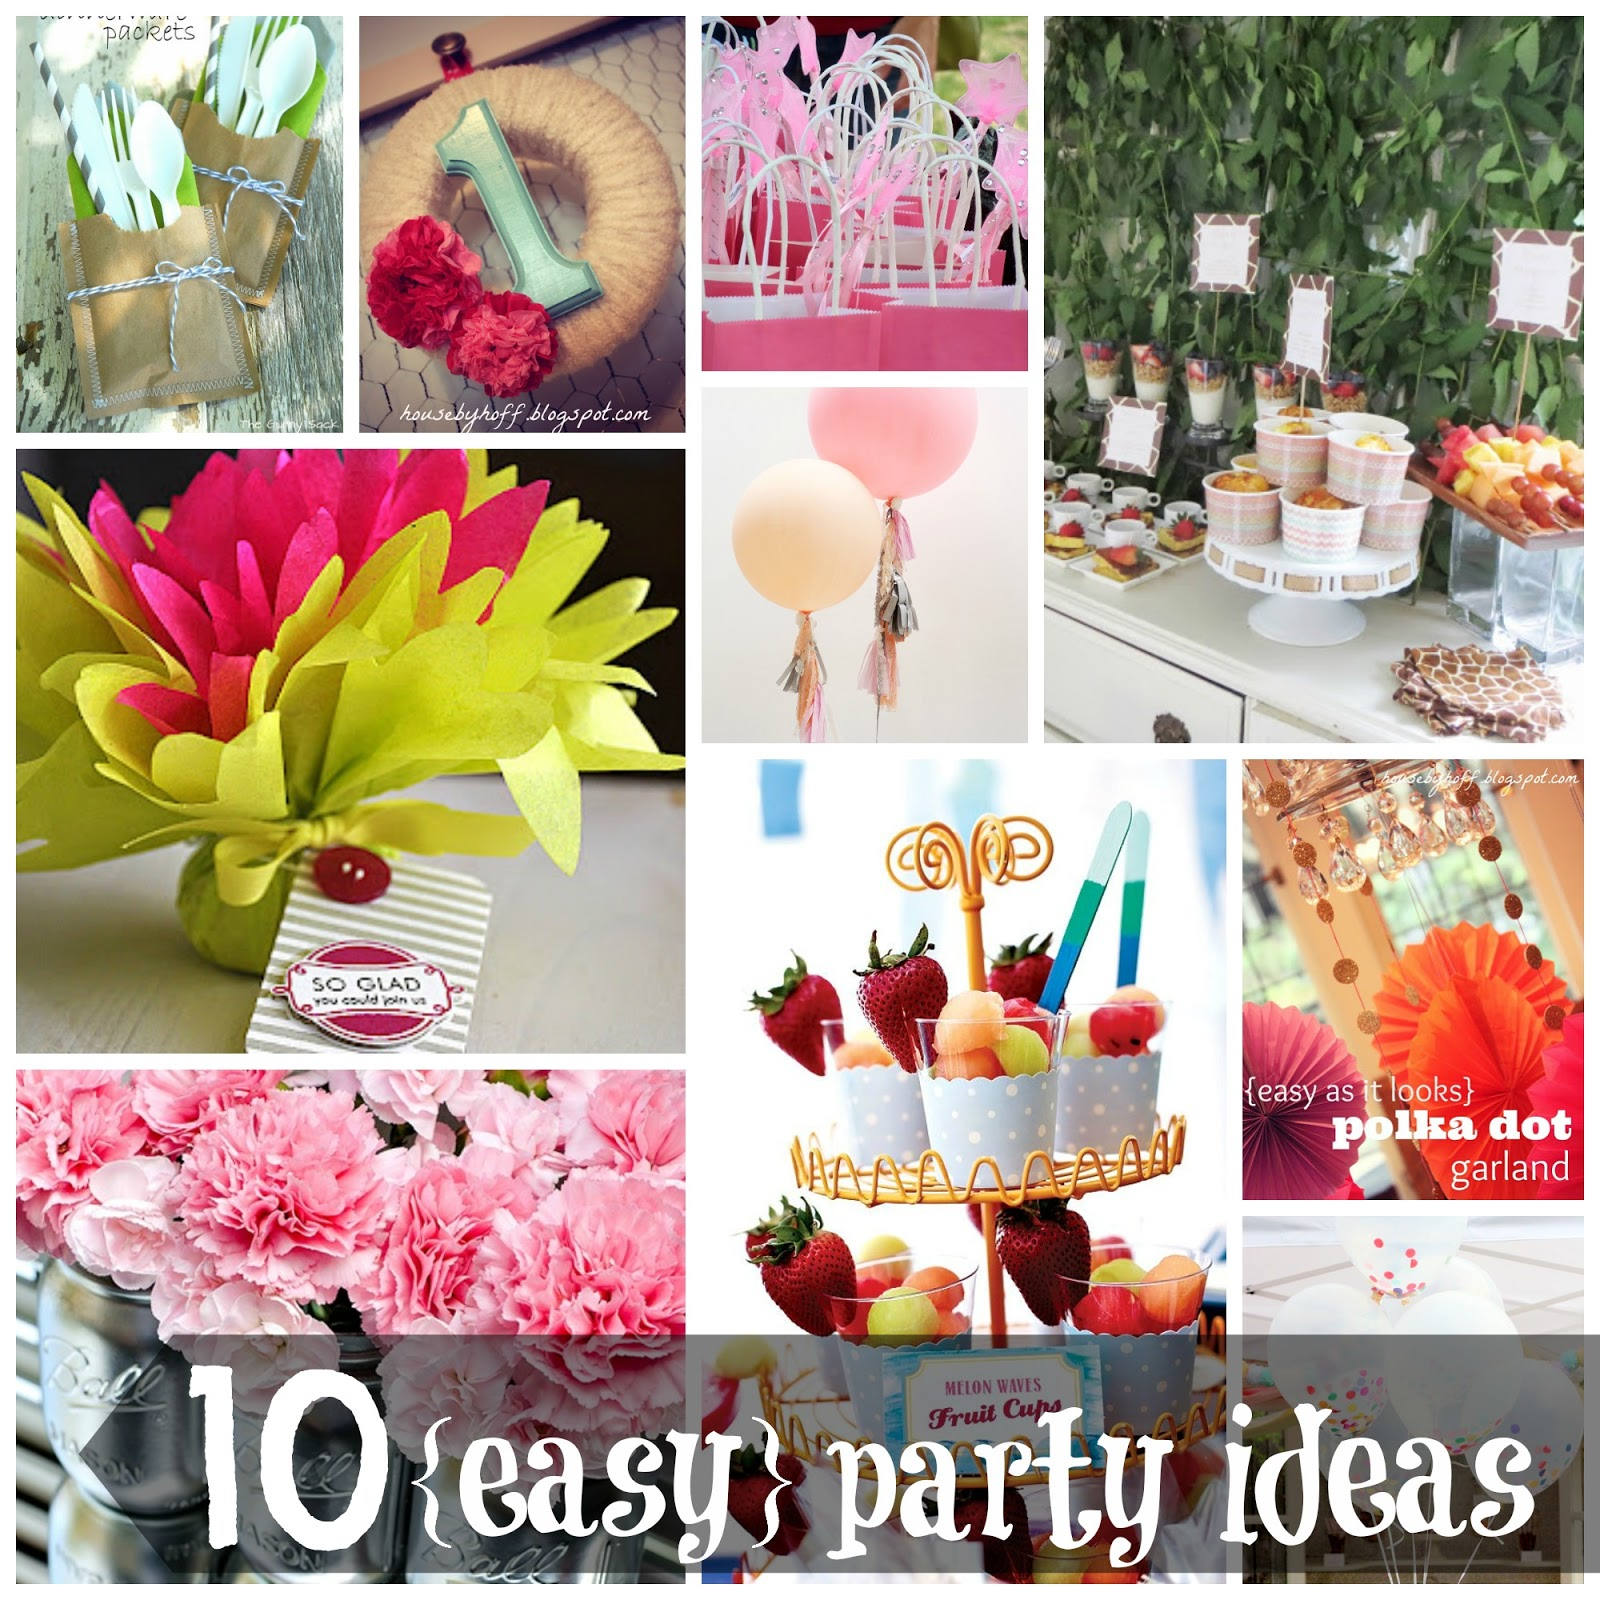 10 easy party ideas 10 easy party ideas diy party birthdayparty babyshower partydecor solutioingenieria